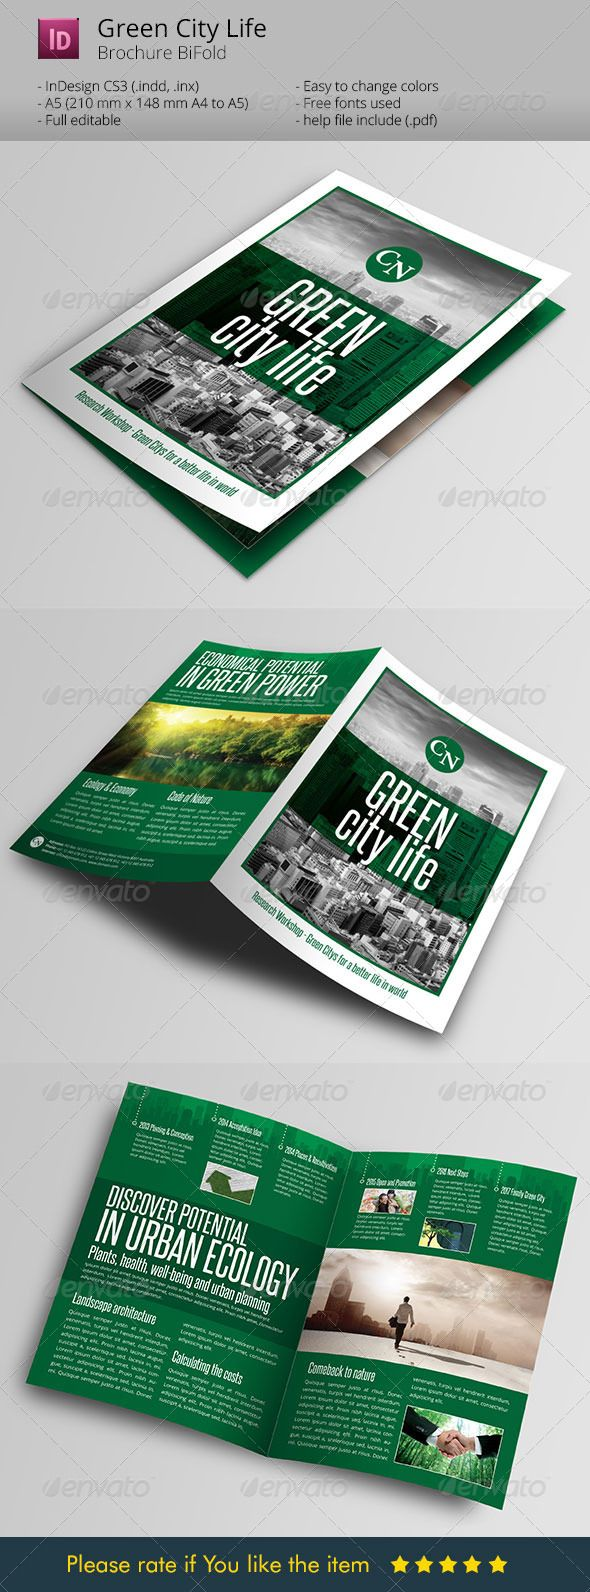 Green City Life Brochure Indesign Template